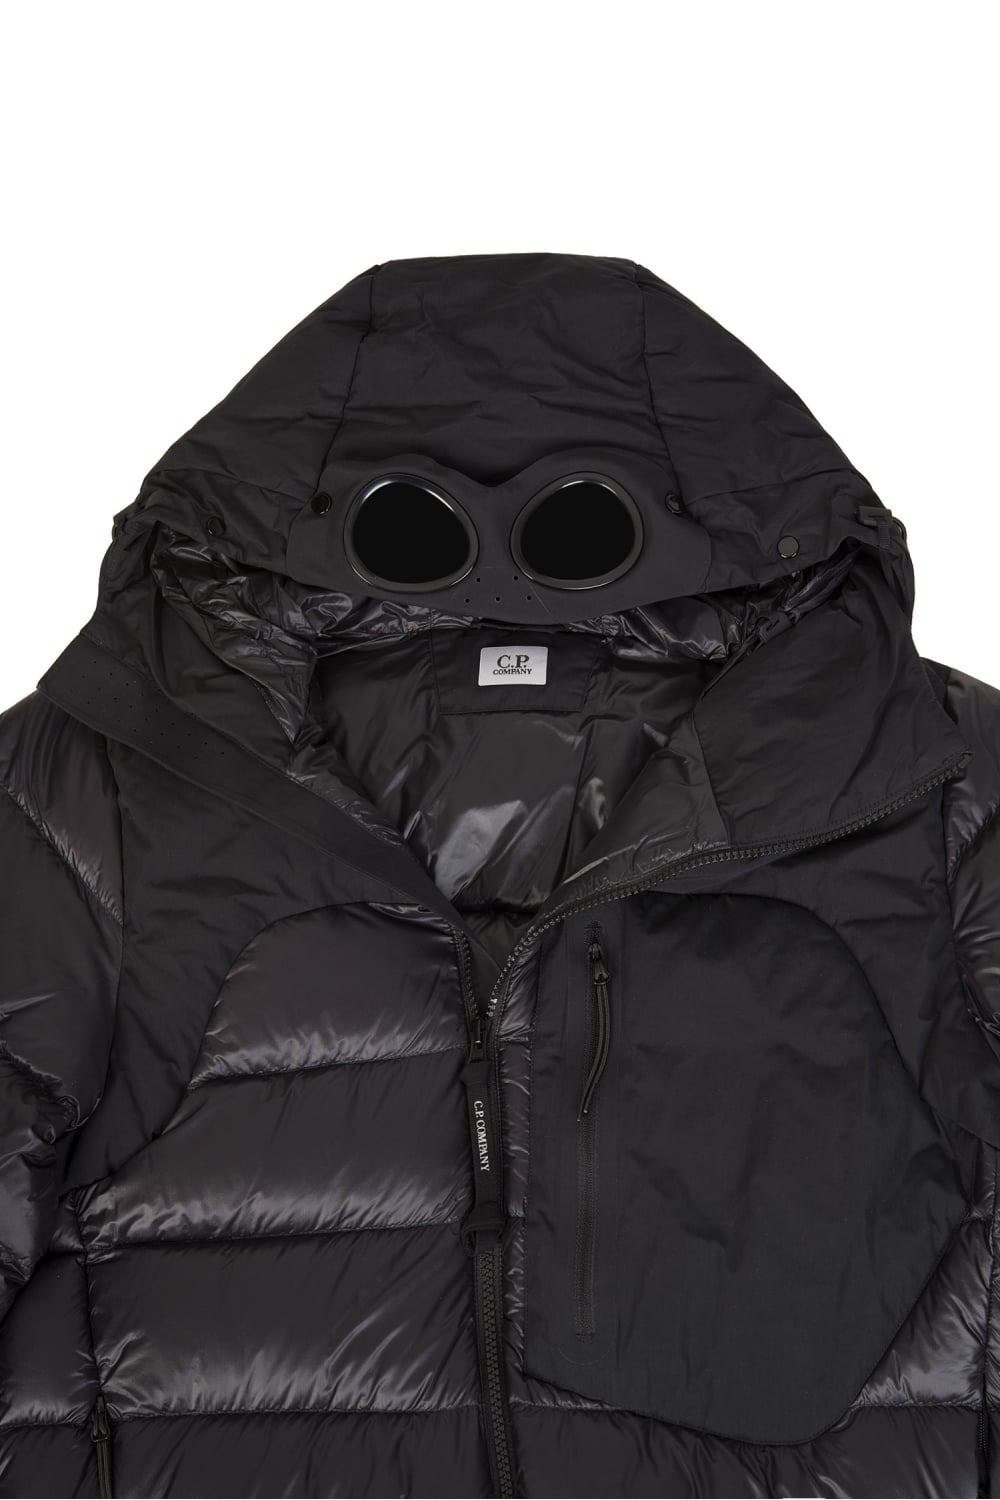 CP Company Goggle Hood Bubble Jacket in